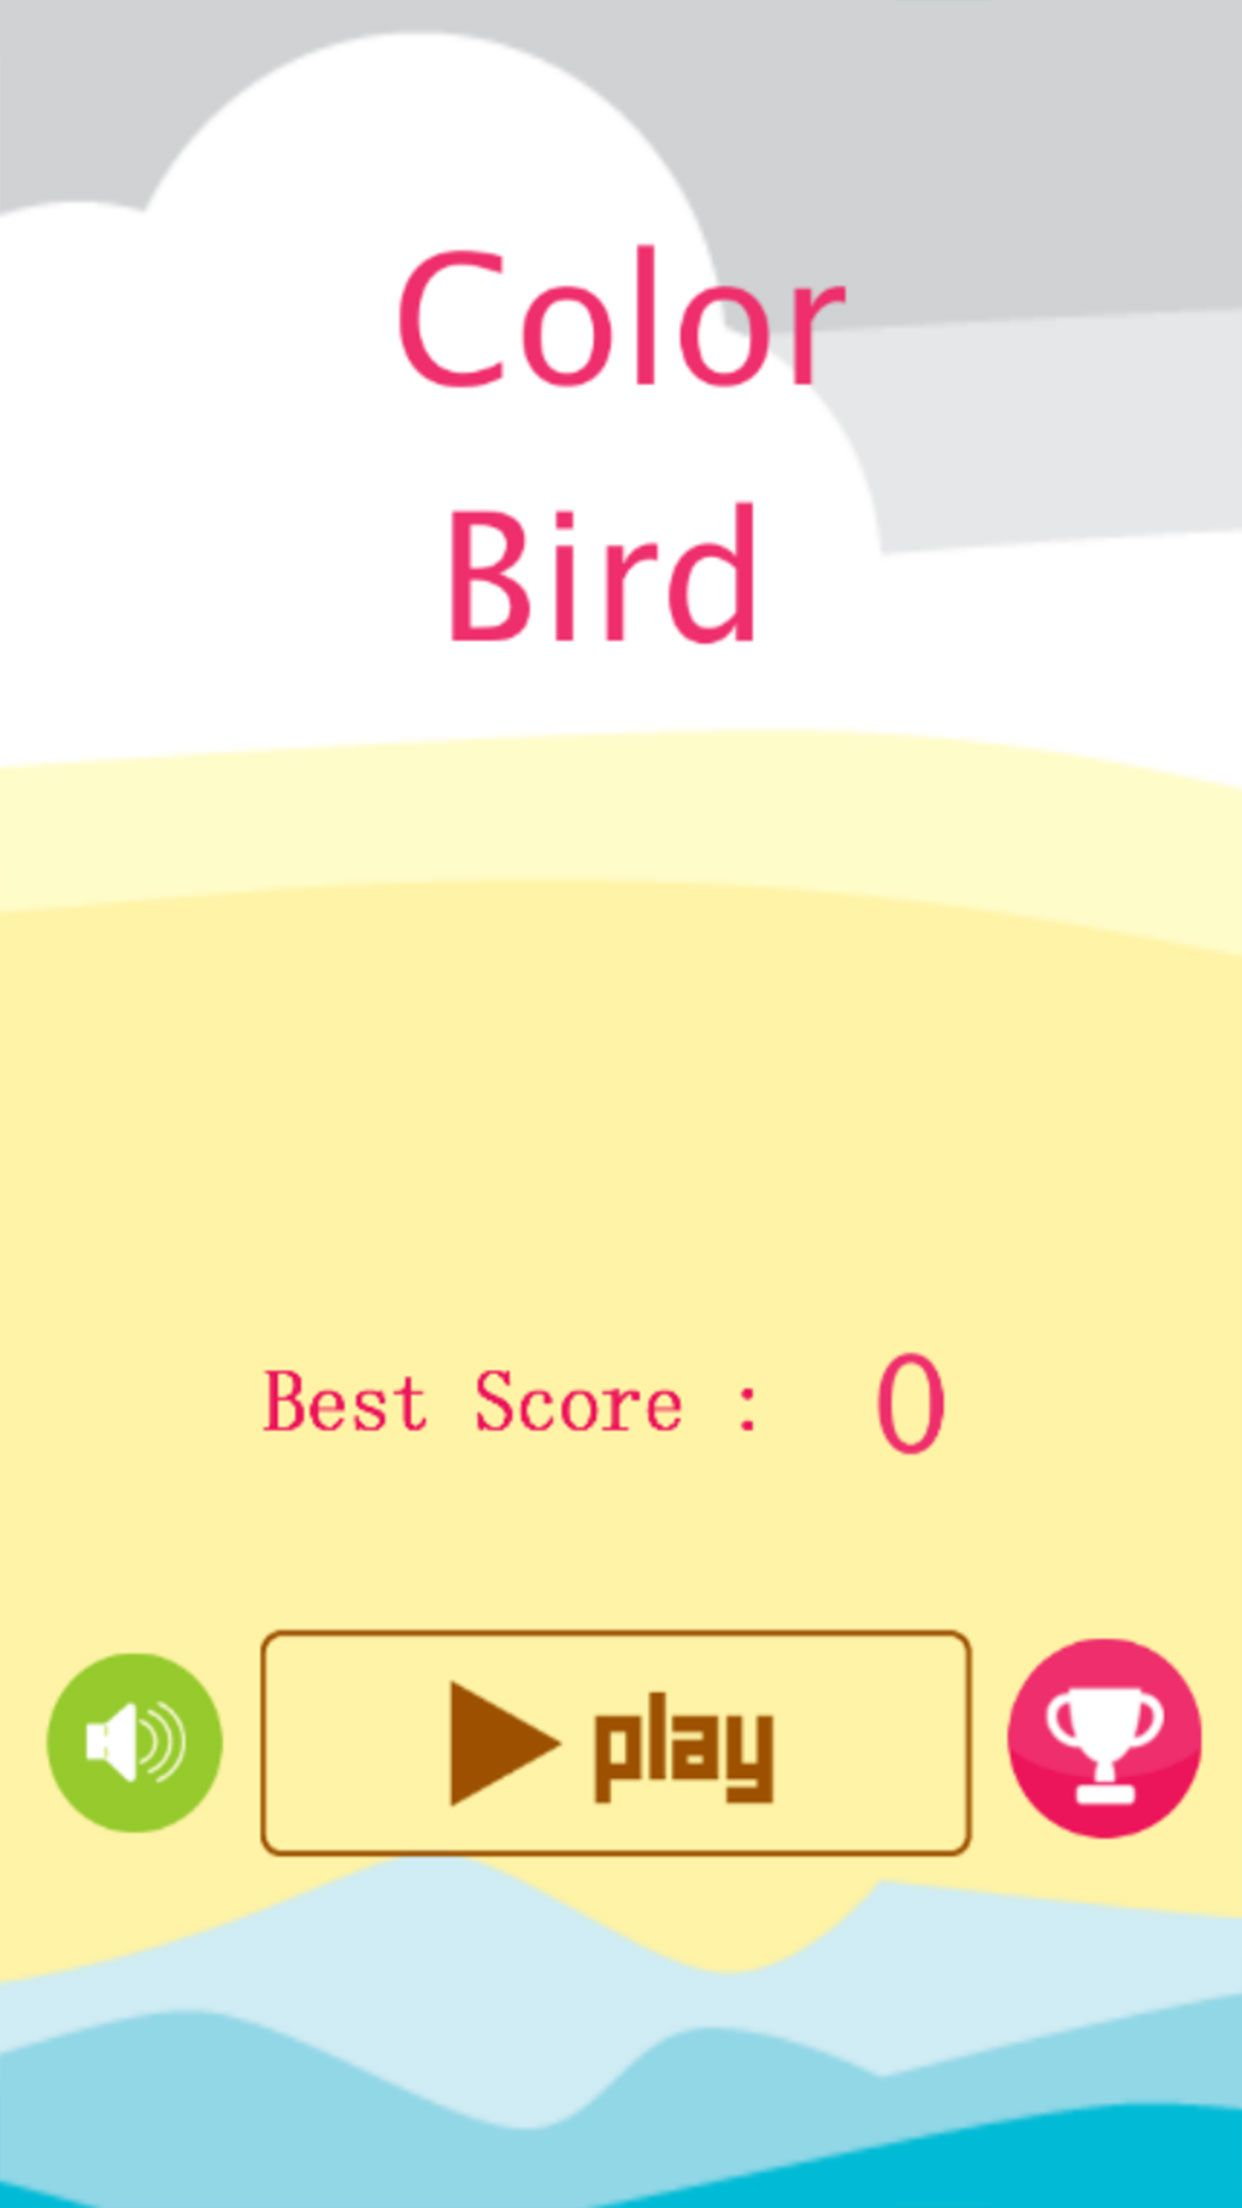 Color Bird - Buildbox Game Template Screenshot 3